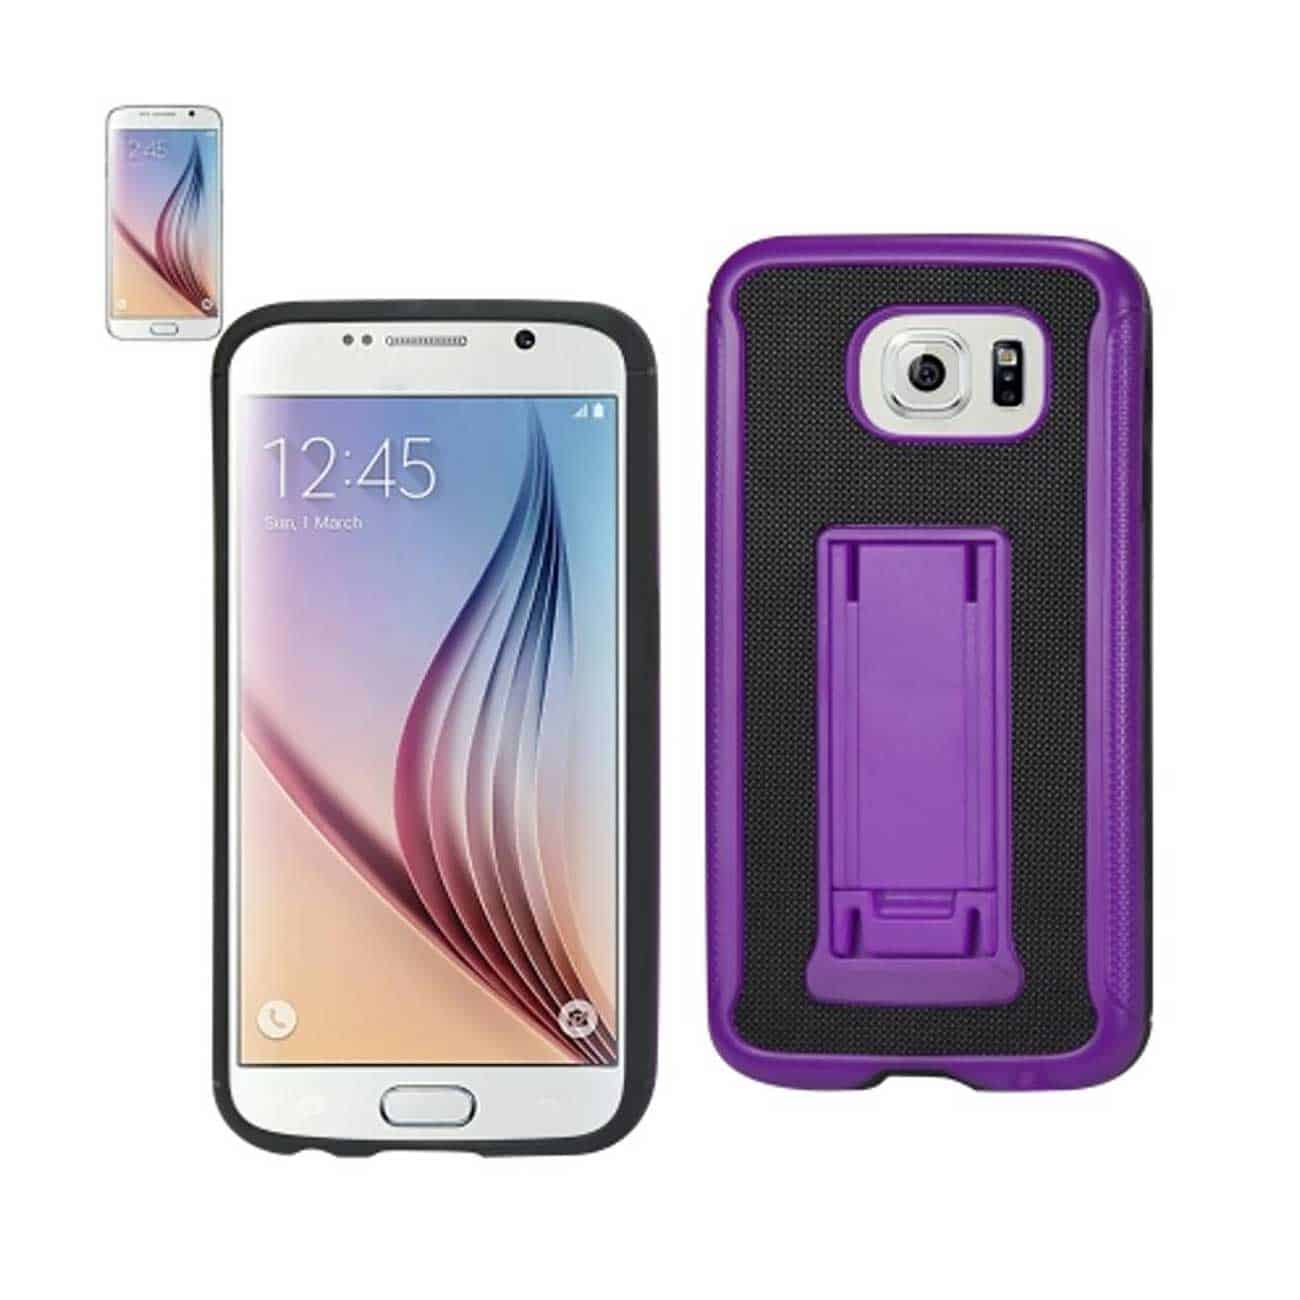 SAMSUNG GALAXY S6 HYBRID HEAVY DUTY CASE WITH VERTICAL KICKSTAND IN BLACK PURPLE